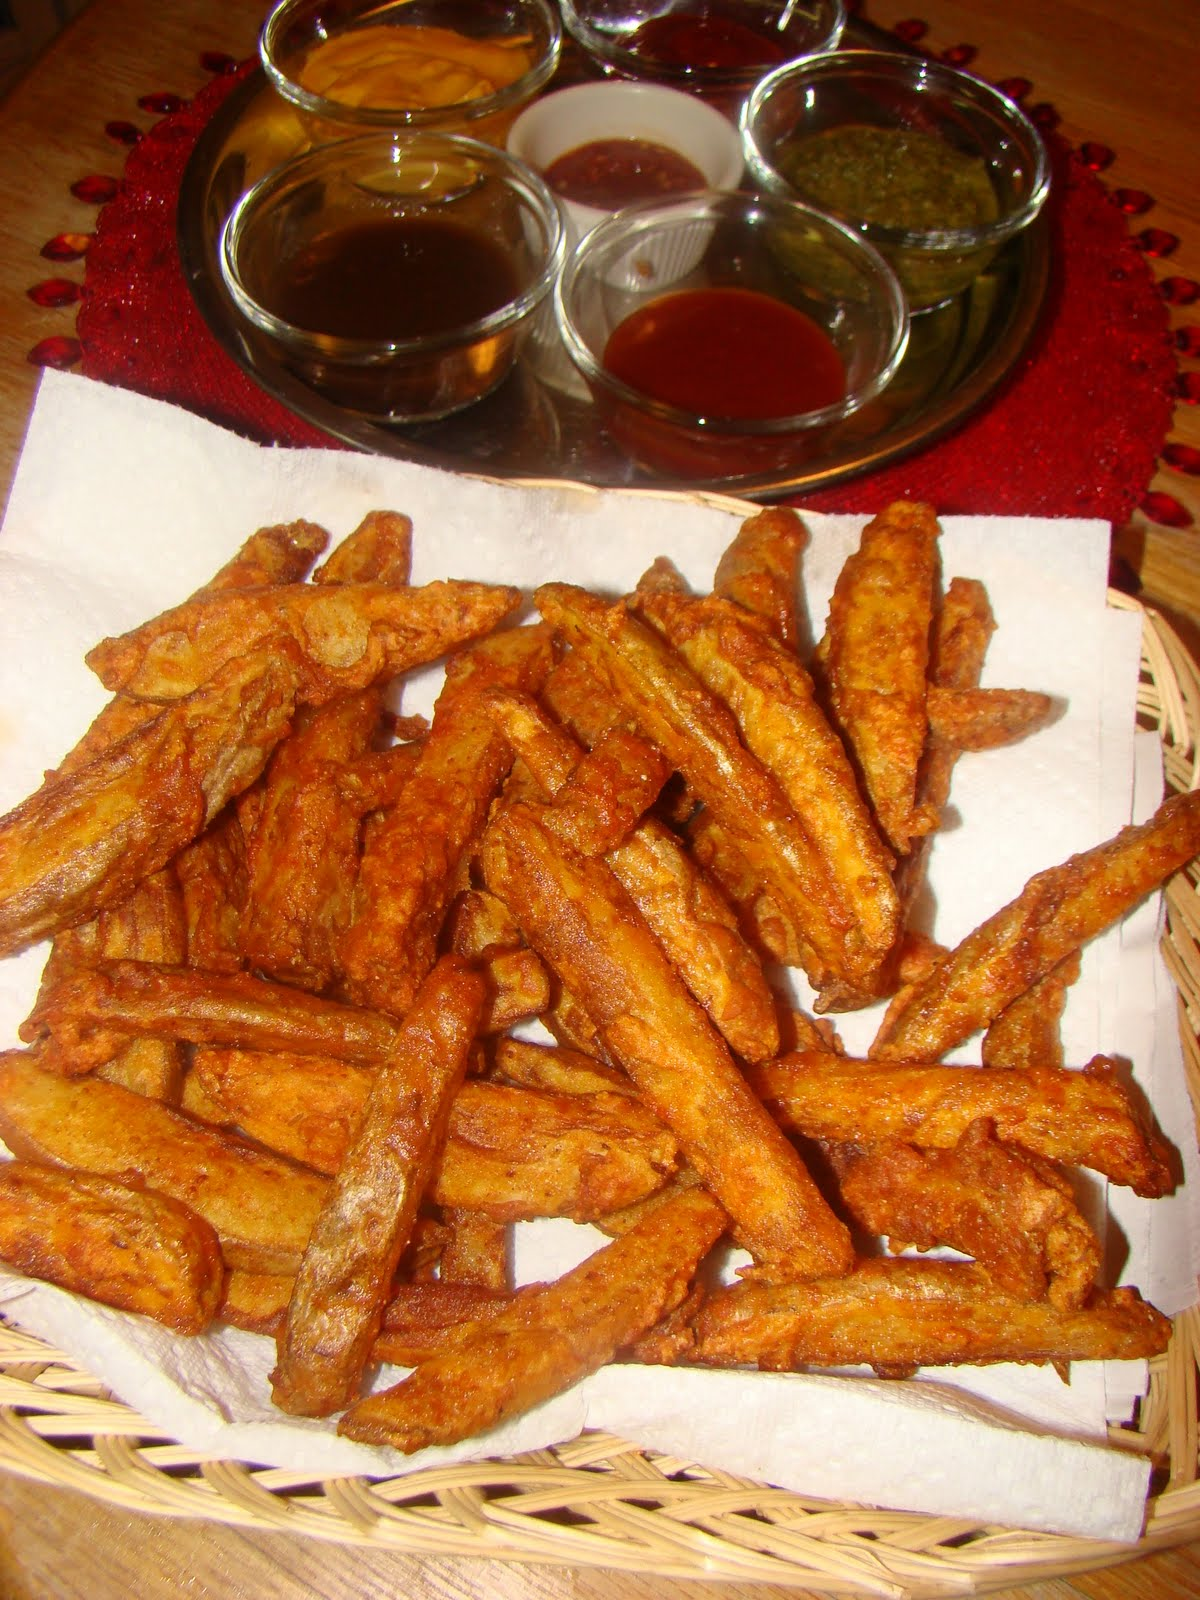 My Favorite Recipes Collection: Crispy Homemade Seasoned French Fries